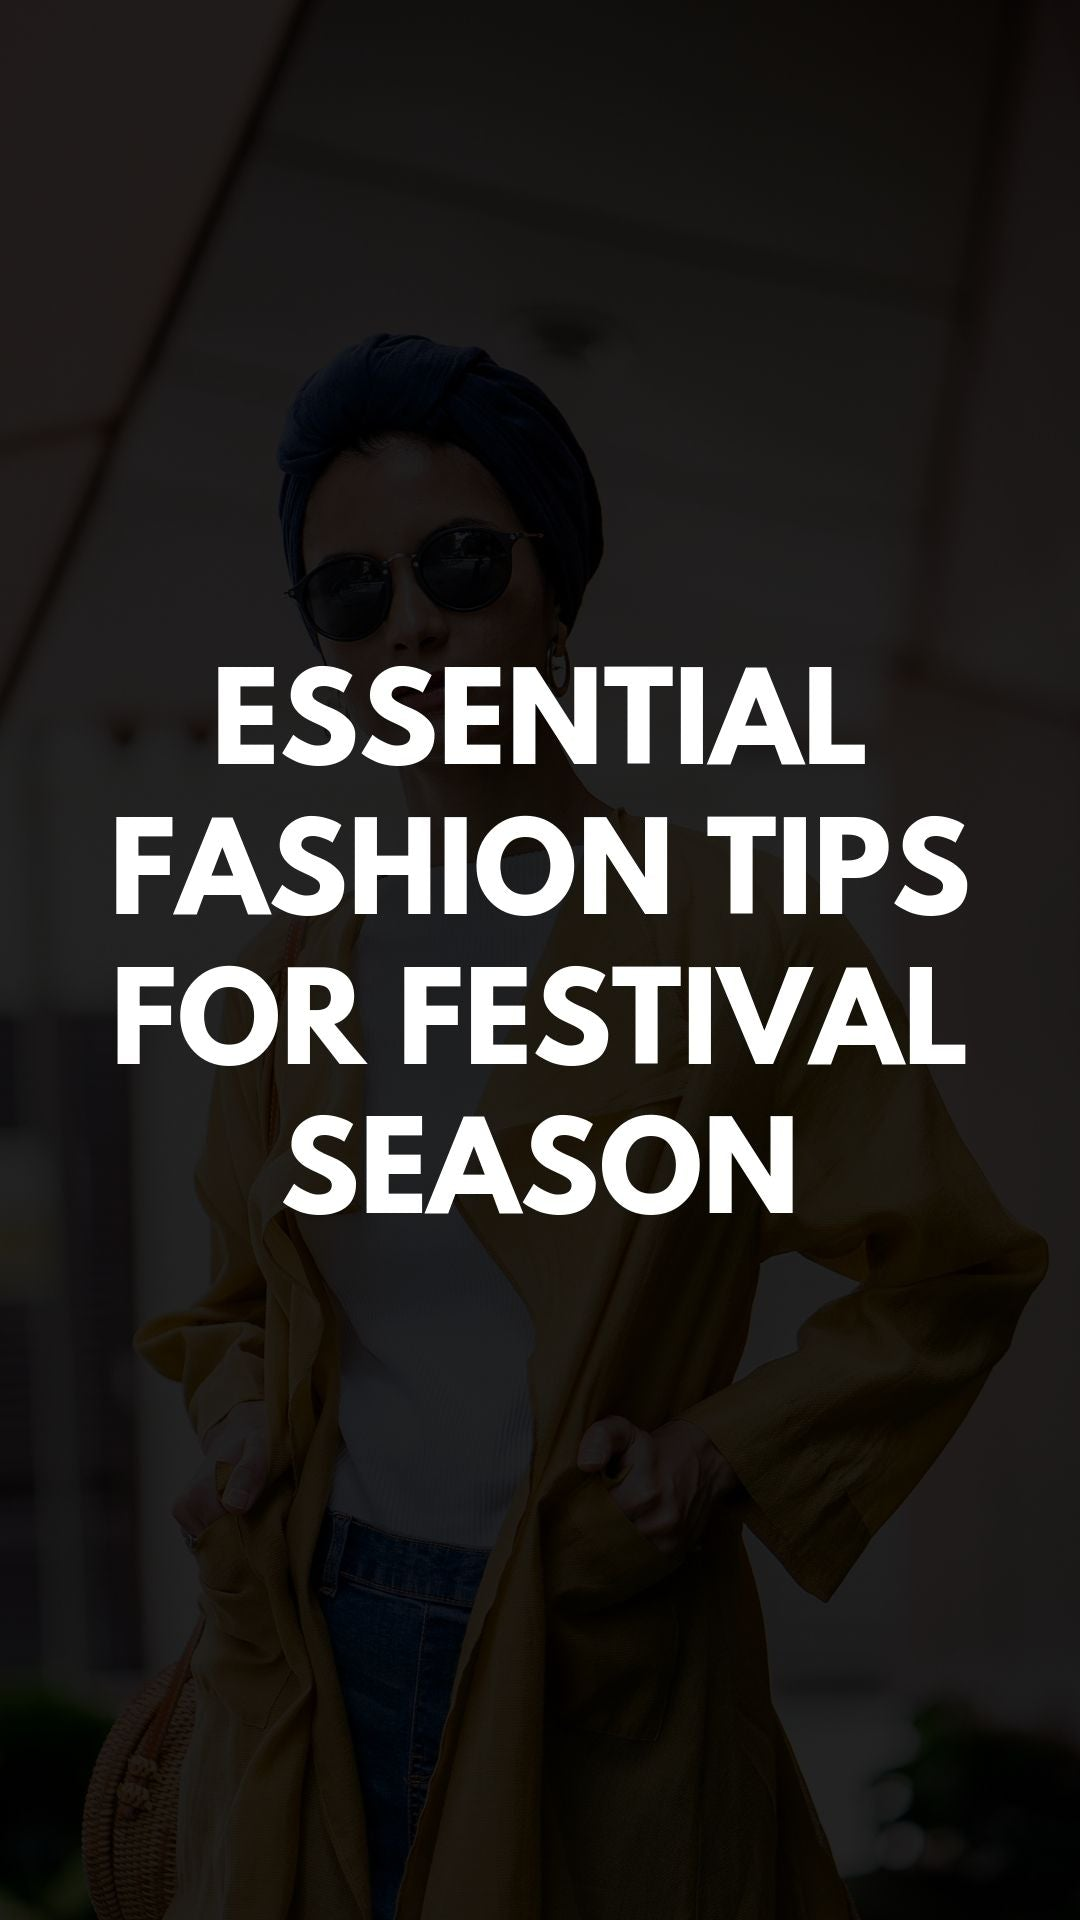 Essential Fashion Tips for Festival Season